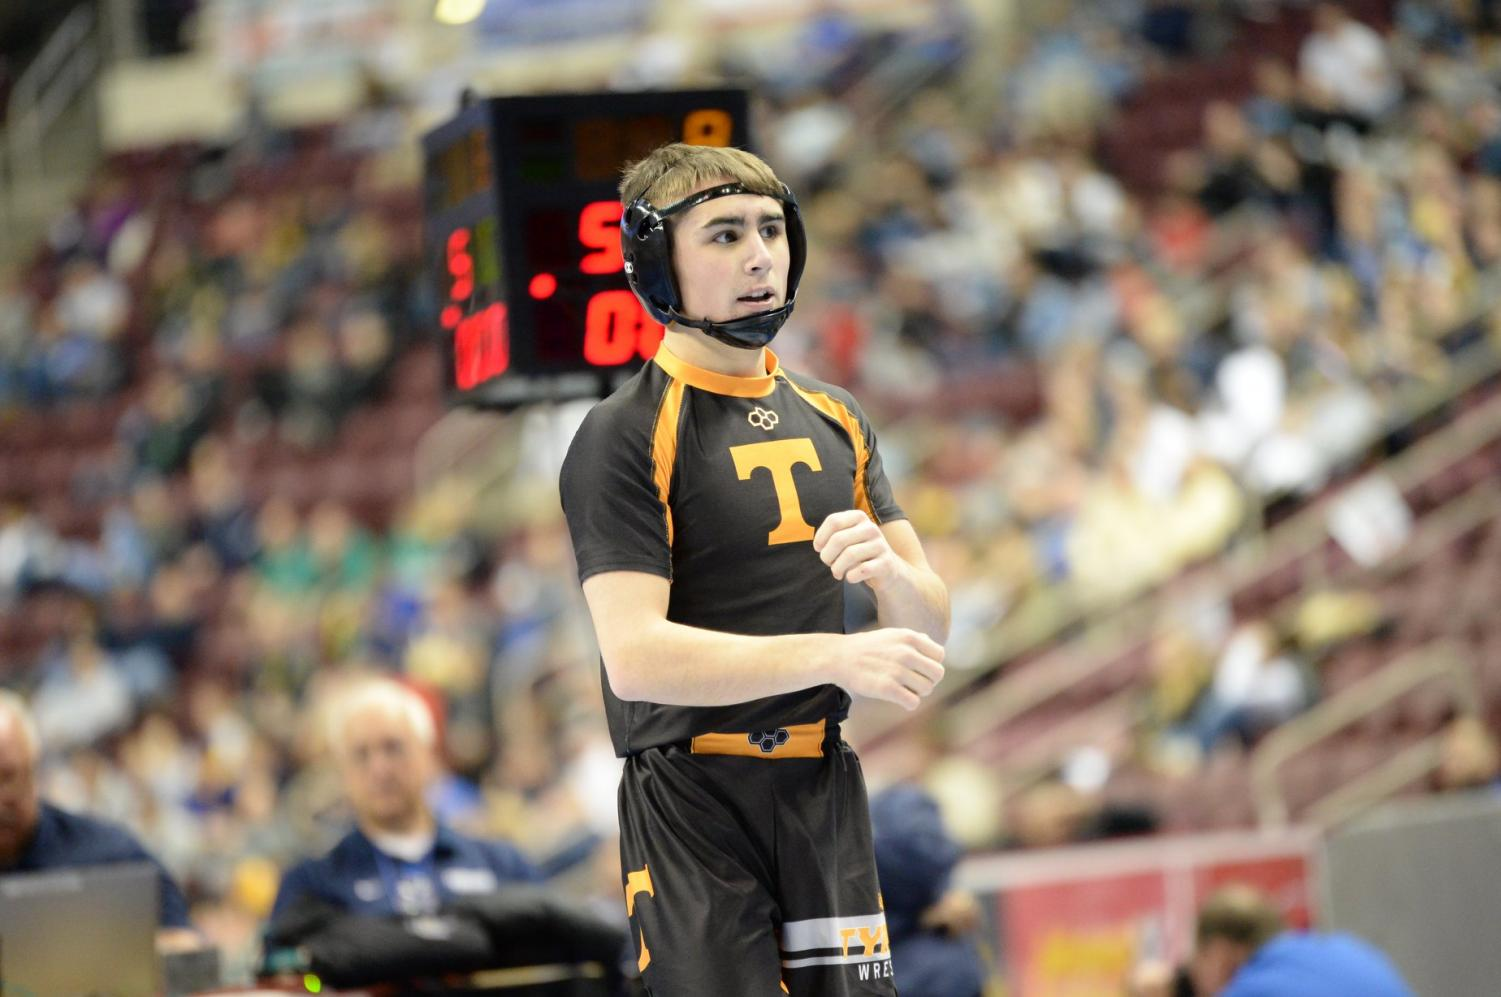 Walk after winning his first match at States on Thursday.